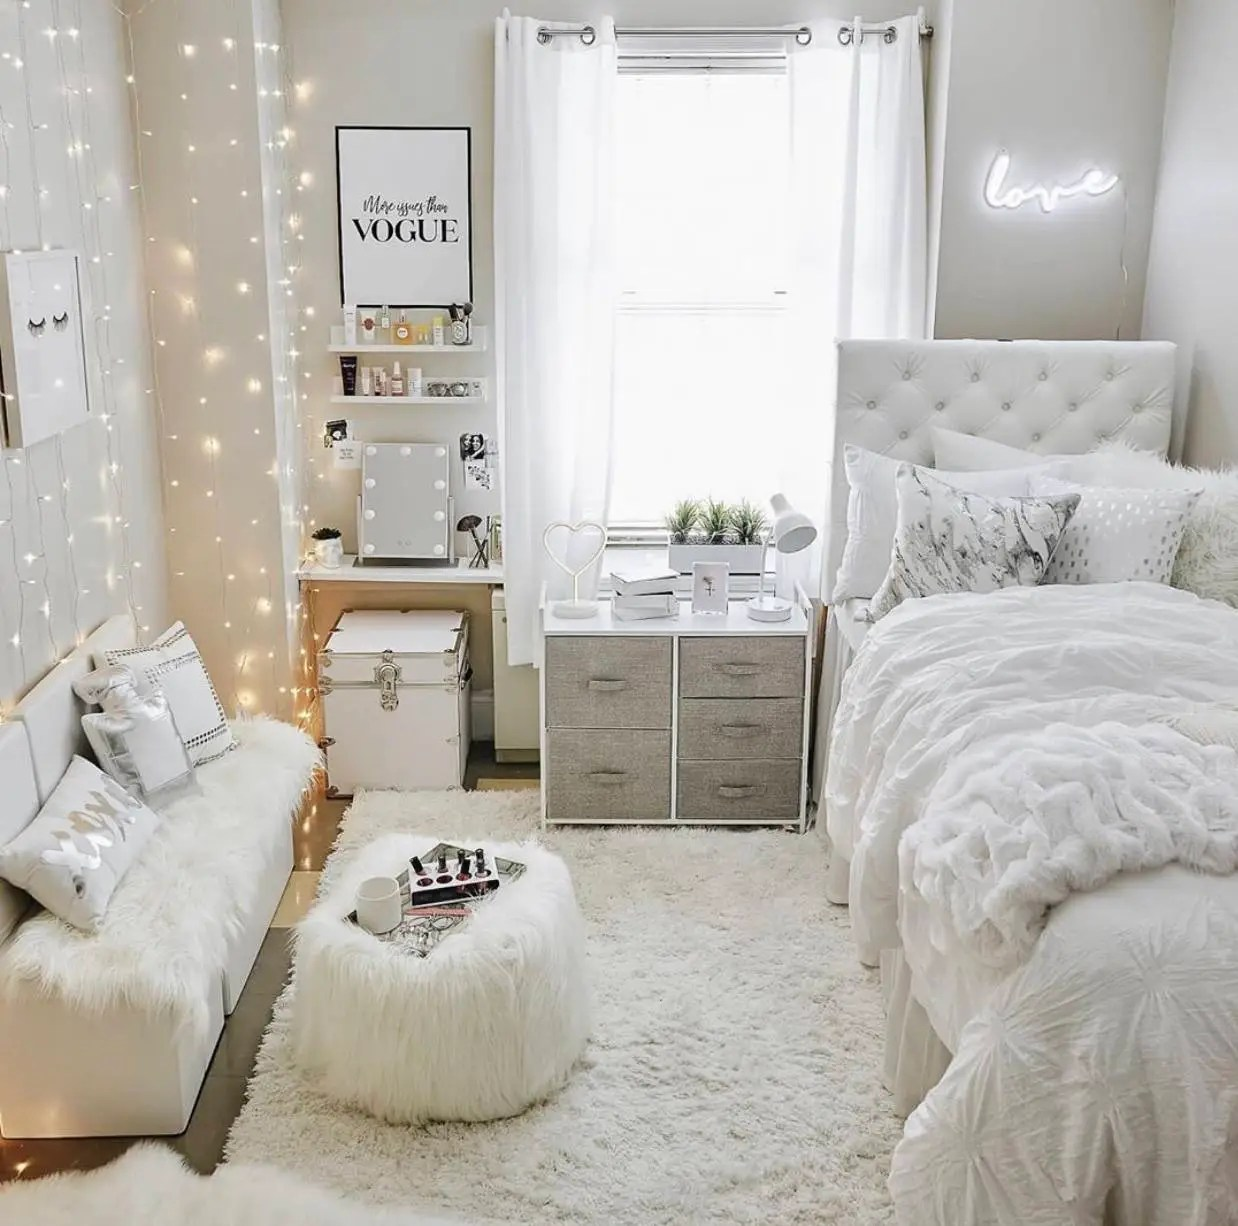 VSCO Room Ideas: How to Create a Cute Vsco Room - The Pink Dream